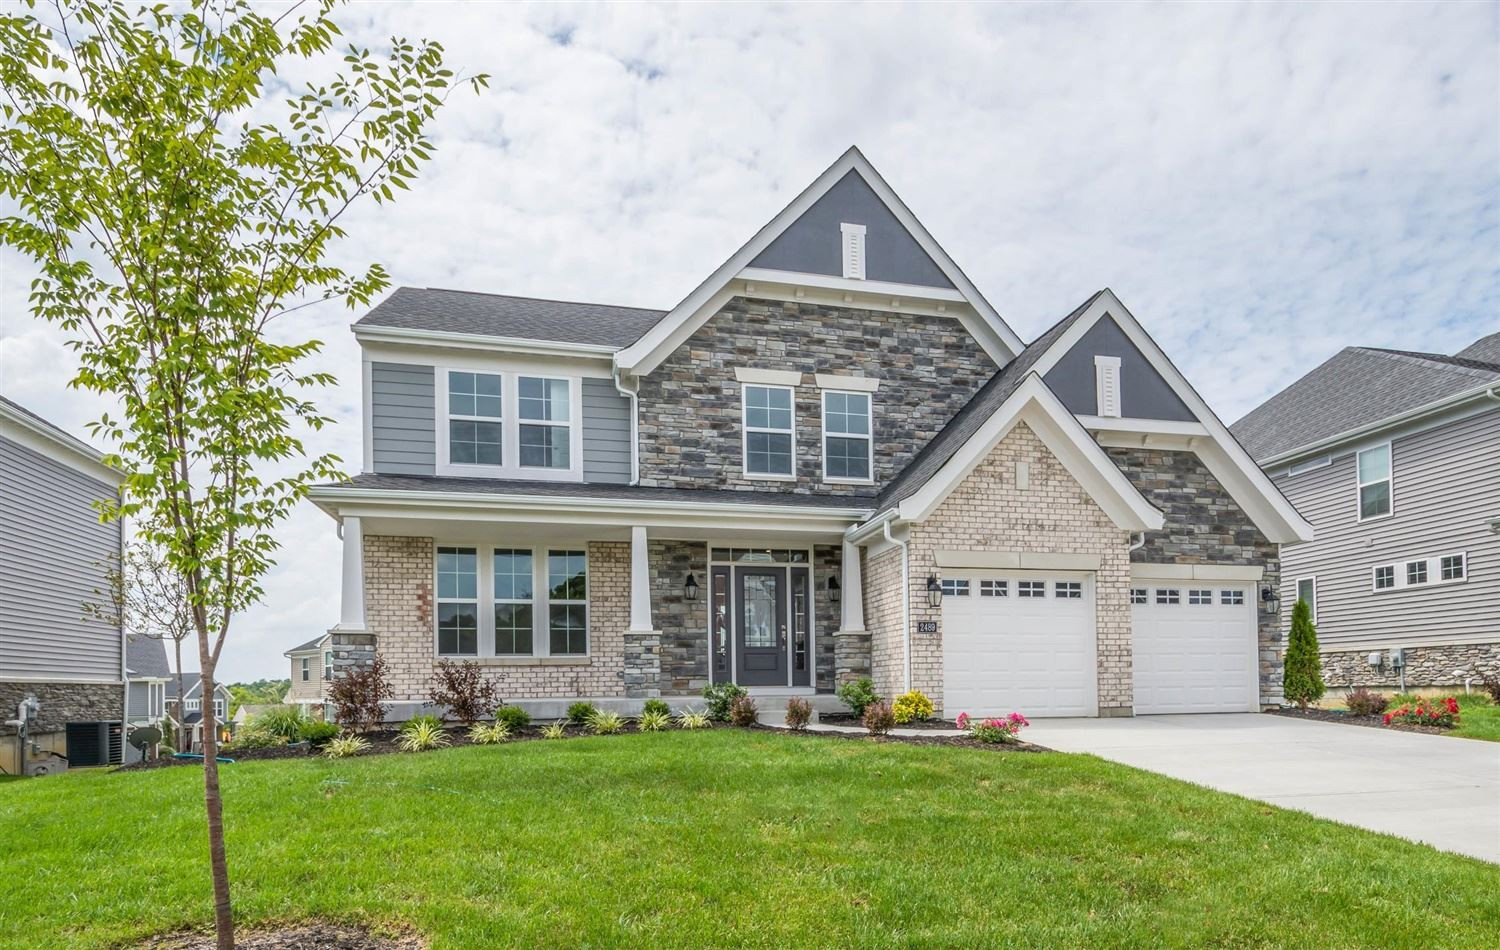 Photo 1 for 2489 Sierra Dr Crescent Springs, KY 41017